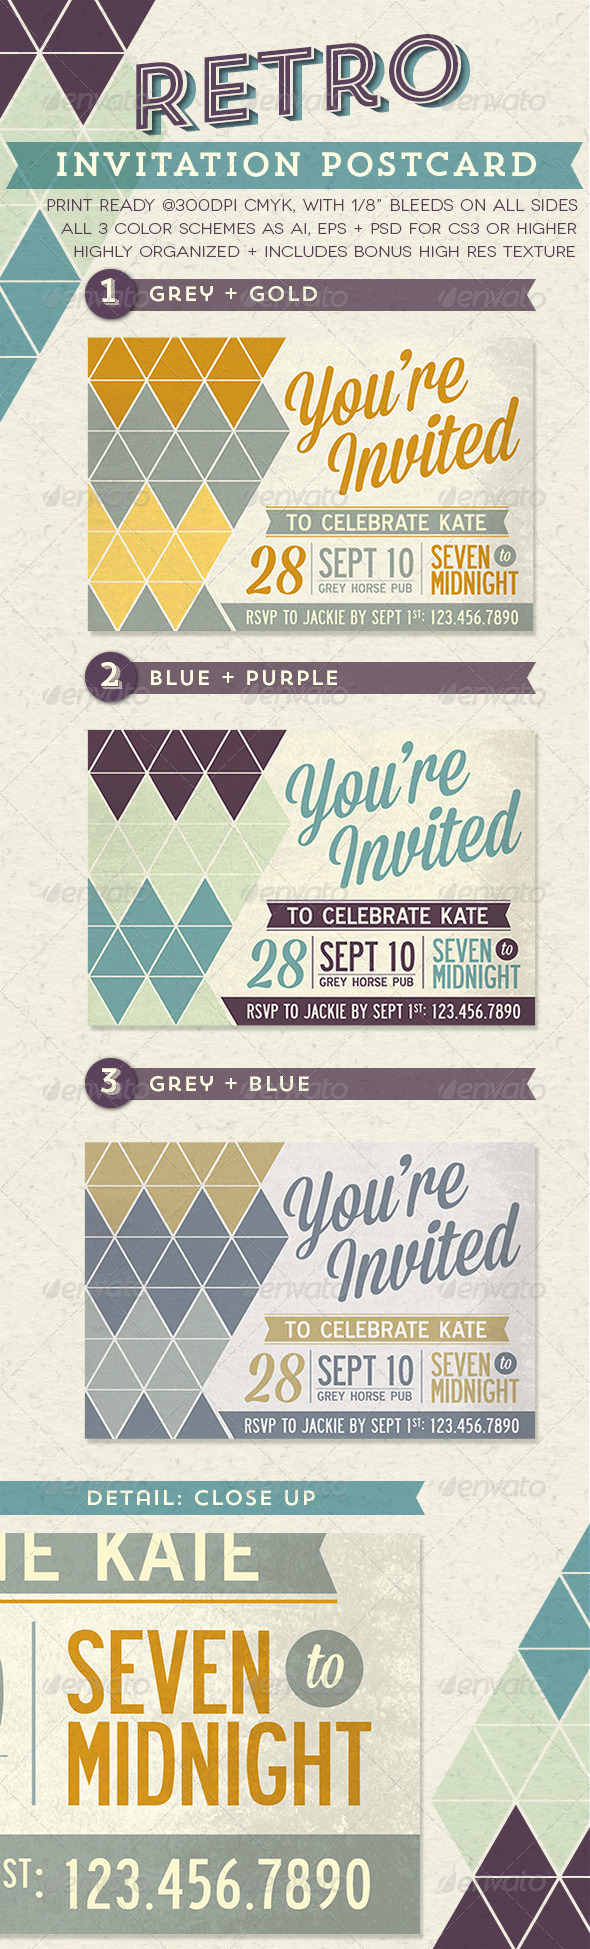 Postcard Wedding Invitations with awesome invitations sample